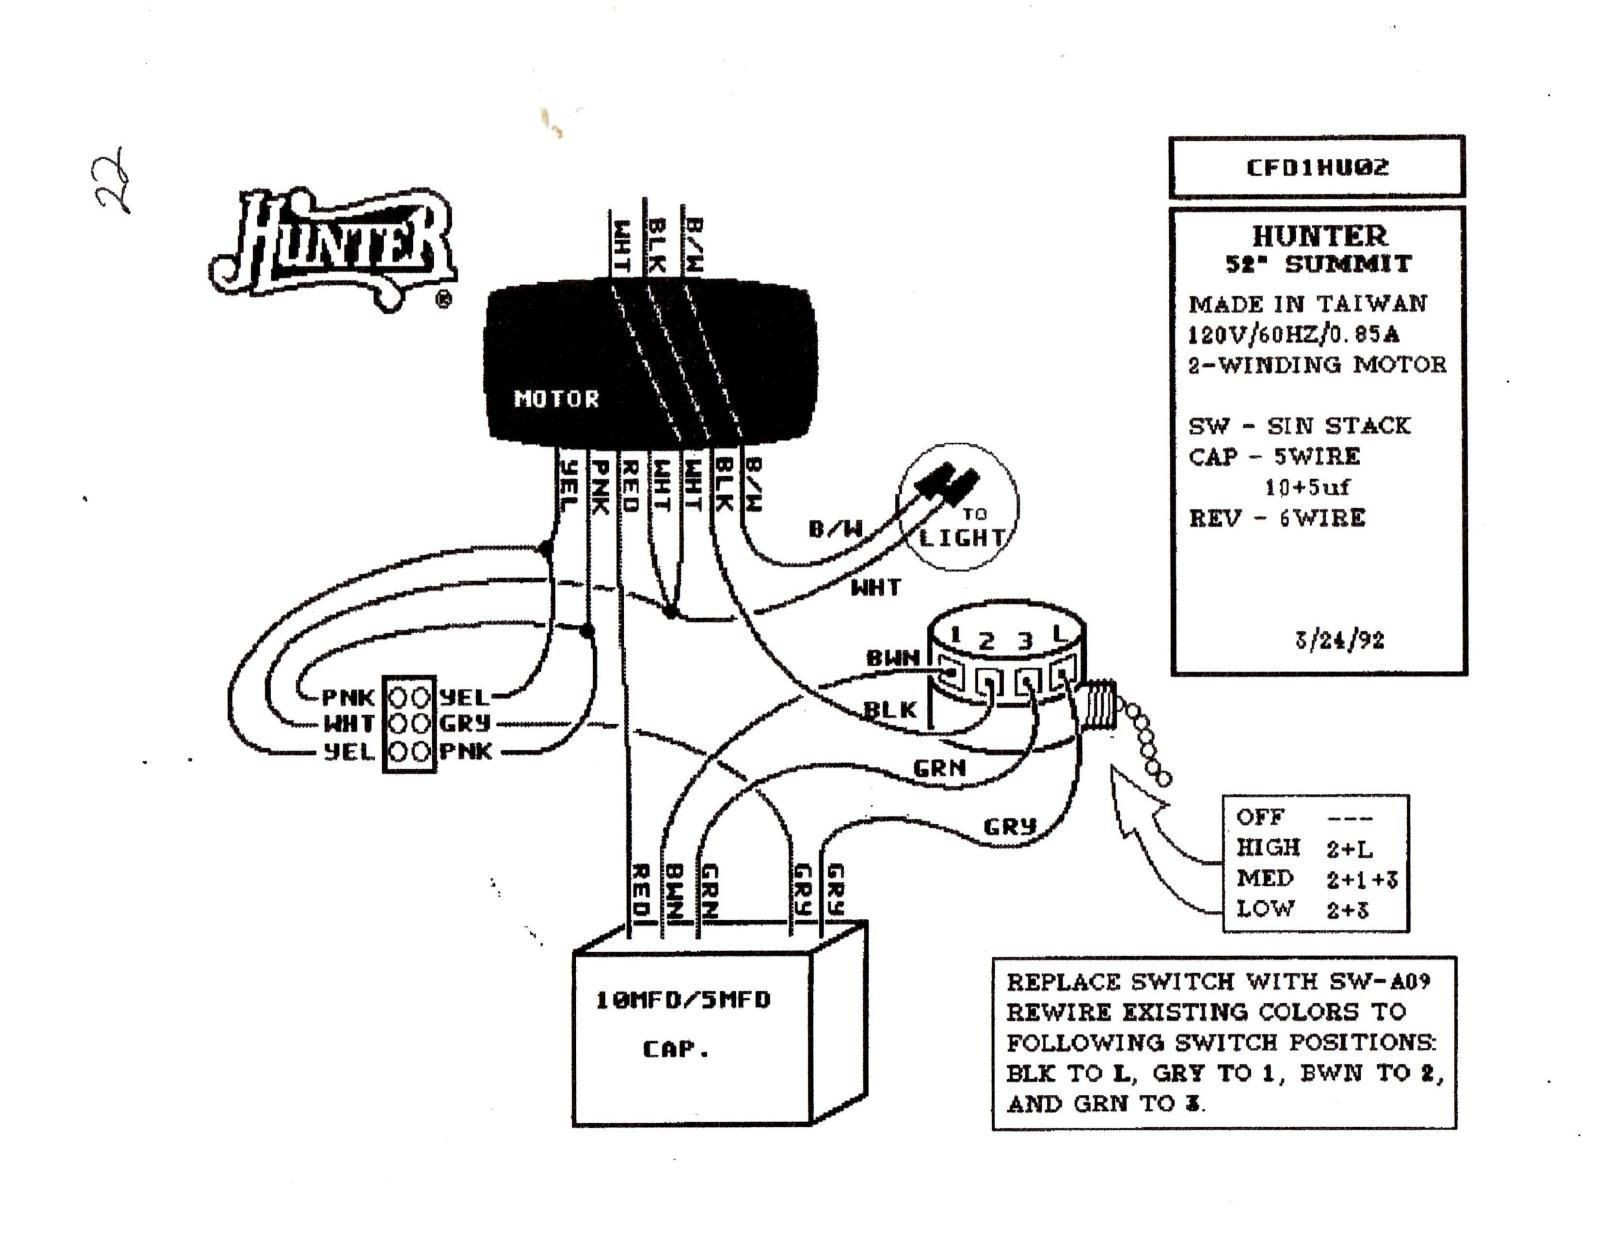 Diagram Wiring Diagram For Hunter Ceiling Fan